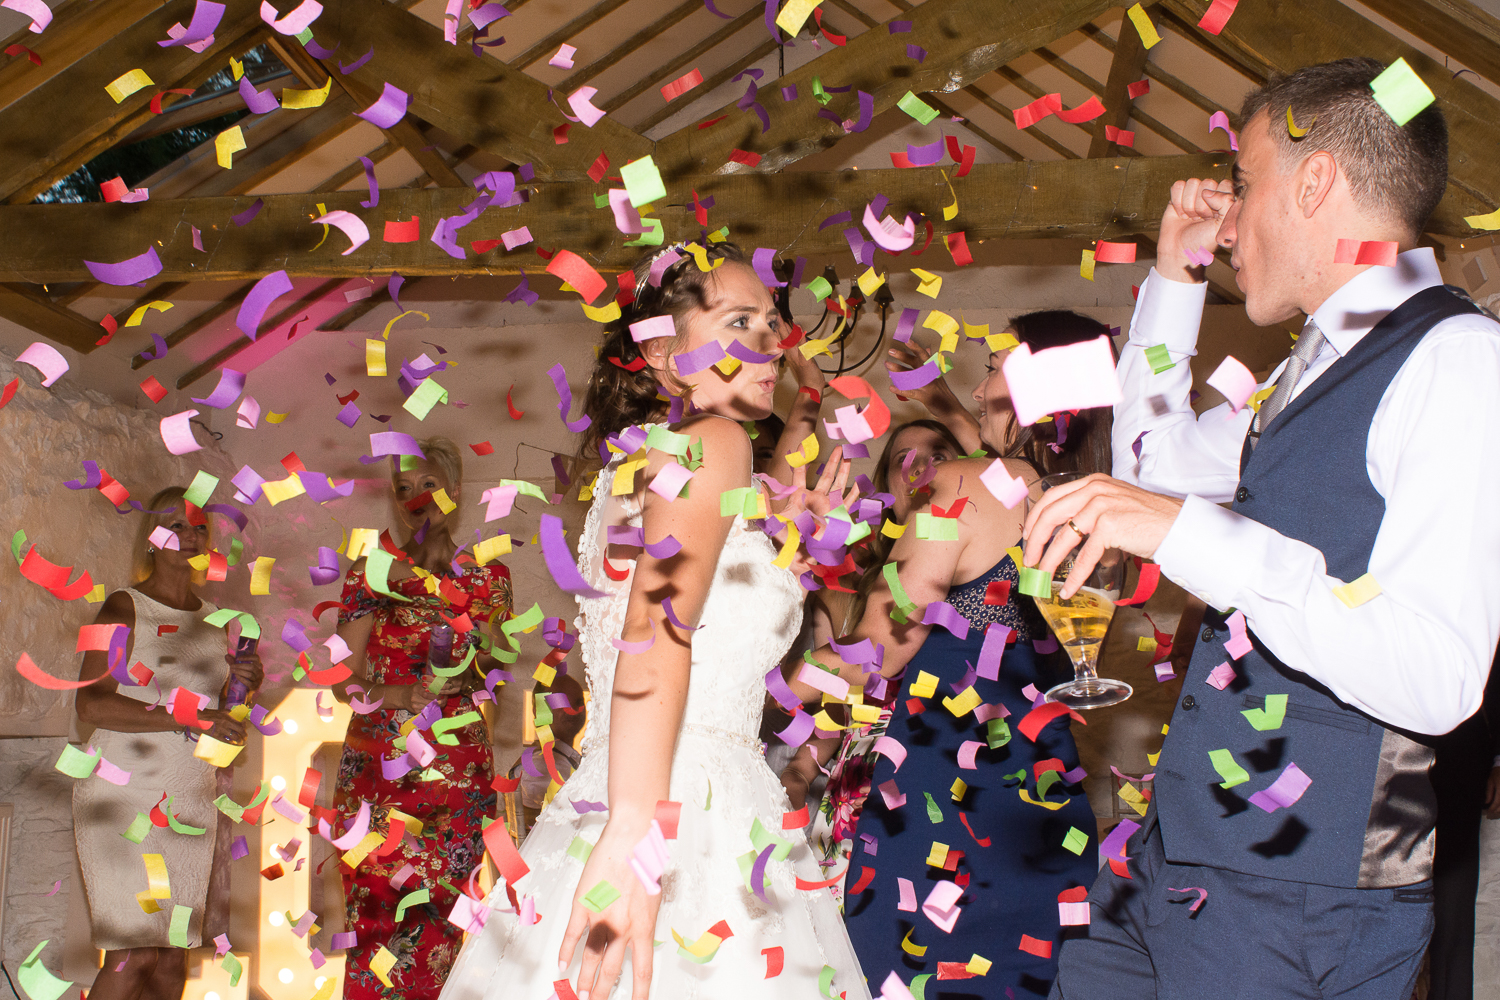 Confetti covers the bride and groom on the dance floor at the Bickley Mill wedding venue in Devon